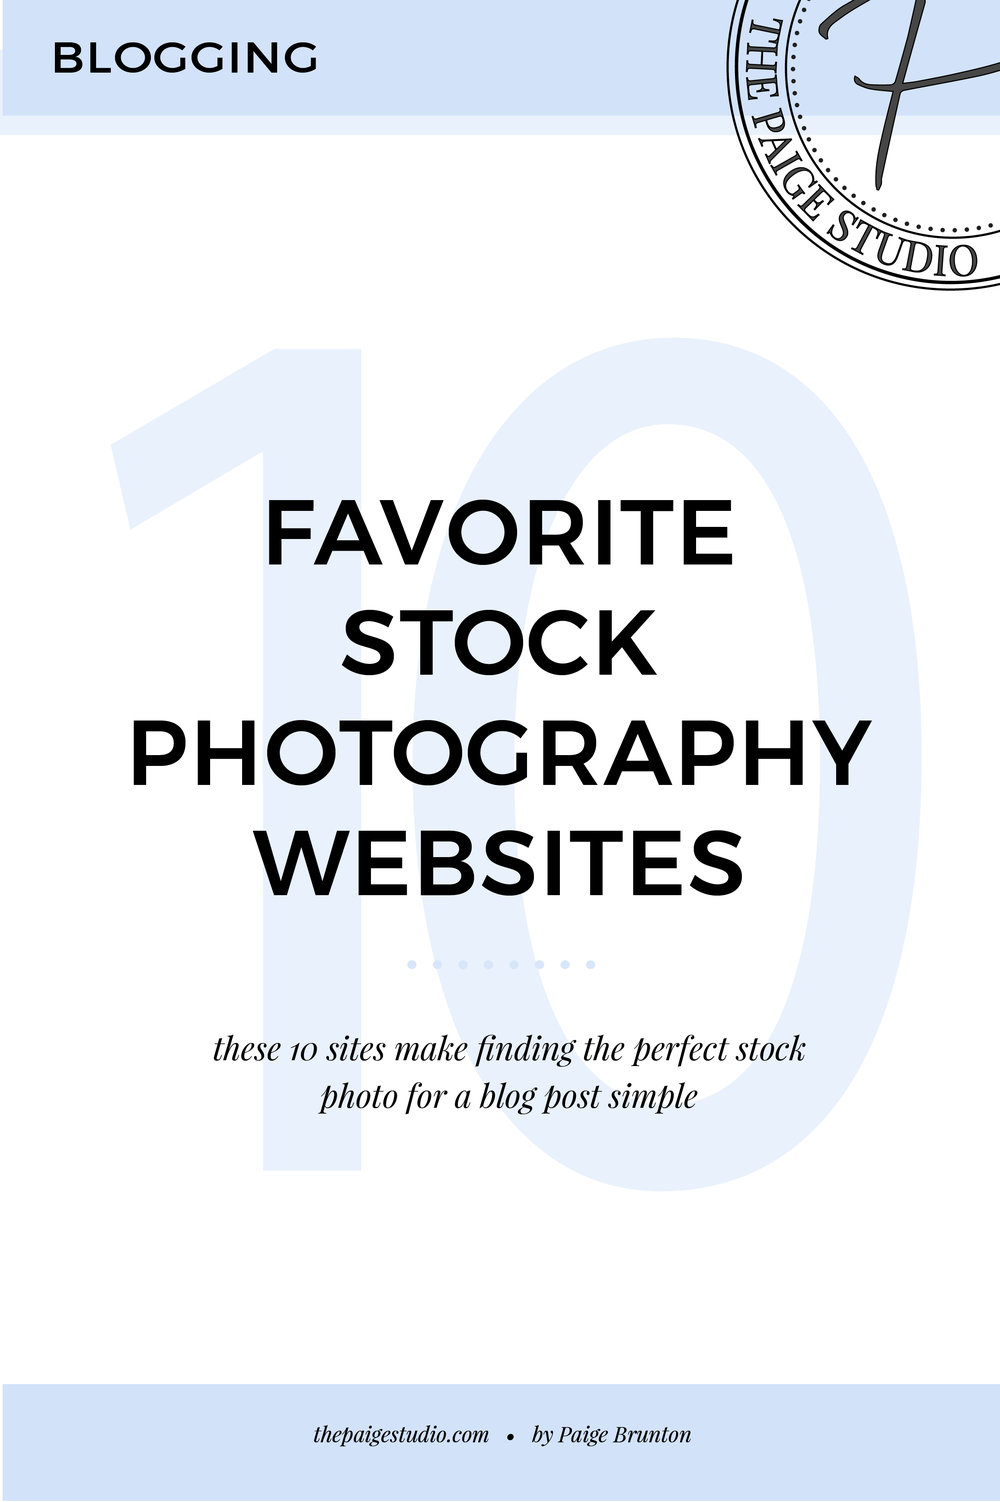 Saving For Later: 10 Guaranteed No-Fuss Stock Photography Websites